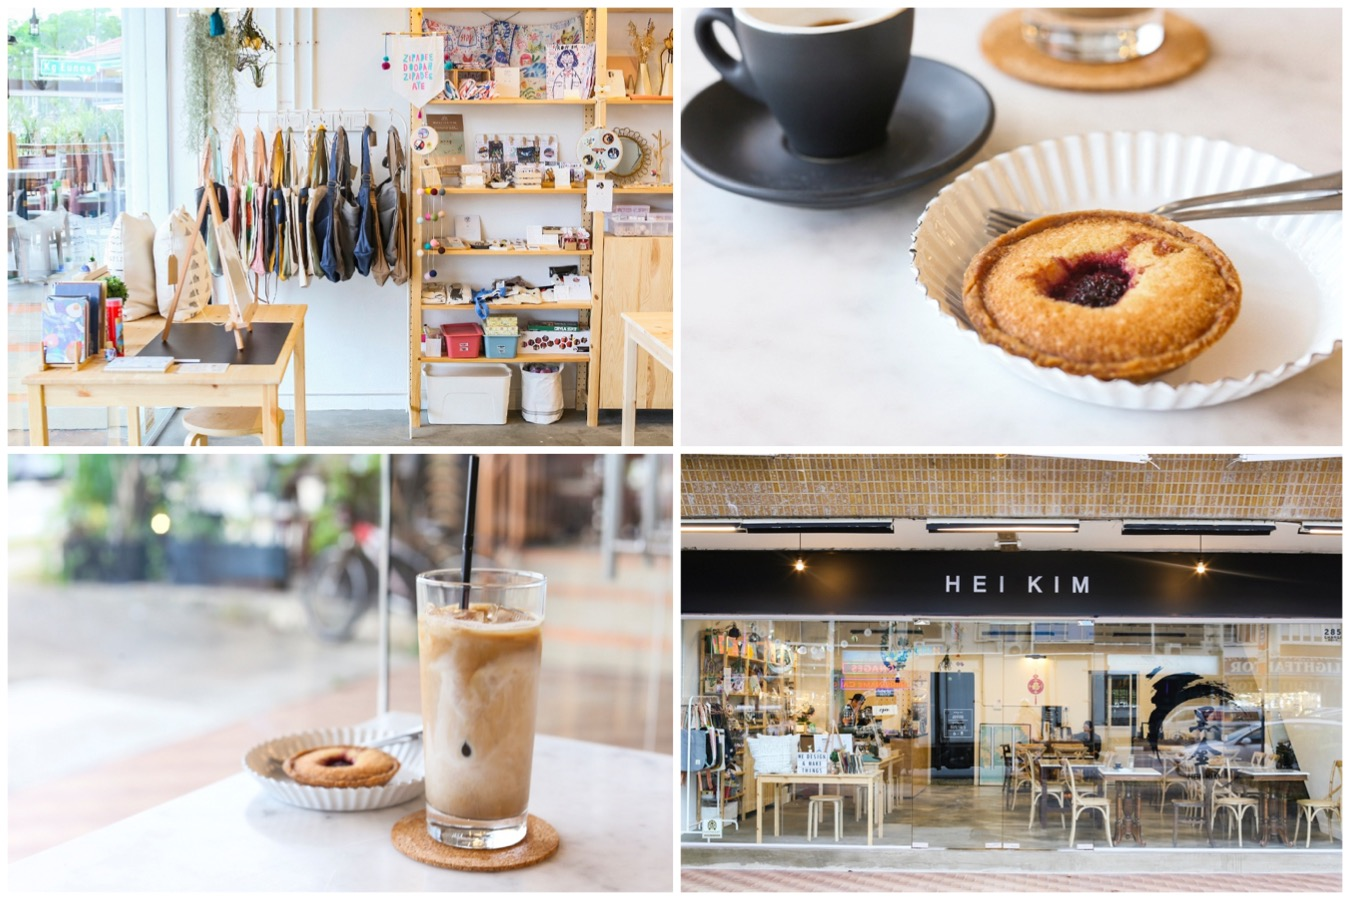 Hei Kim Café - Instagrammable Lifestyle Café In The East, At Changi Road